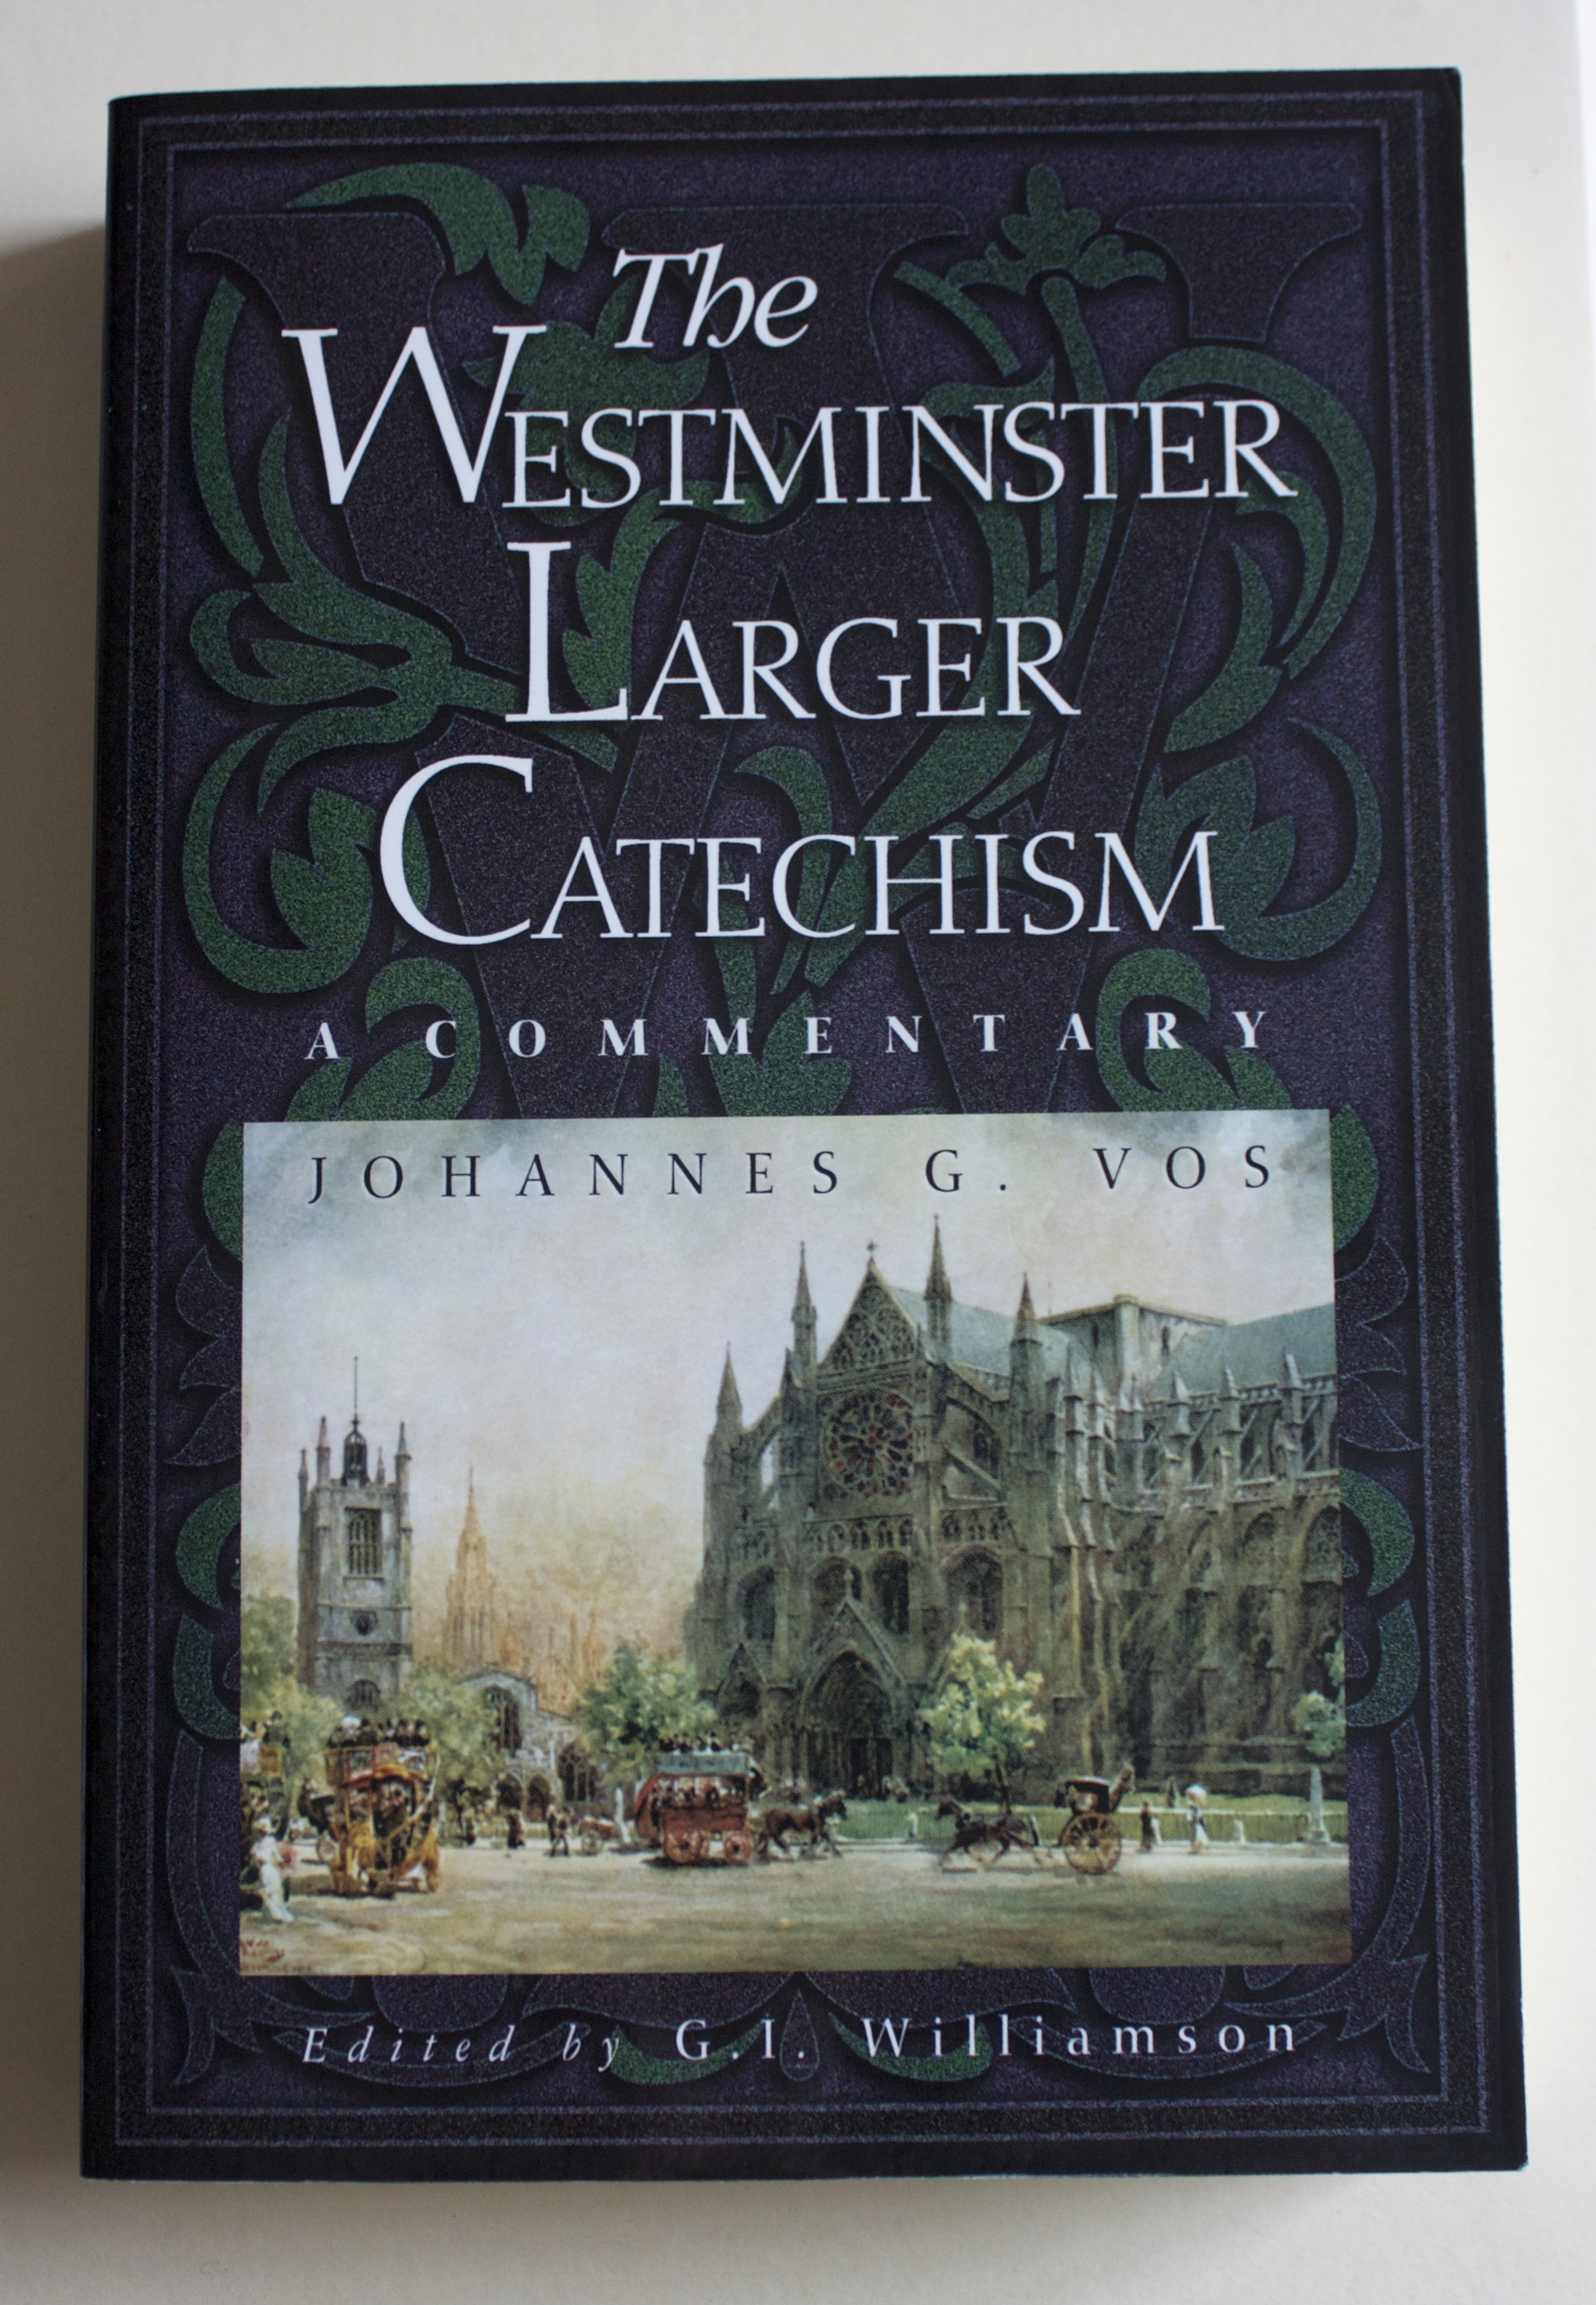 "Copy of ""The Westminster Larger Catechism: A Commentary"" by Johannes G. Vos, edited by G. I. Williamson (P&R, 2002)"